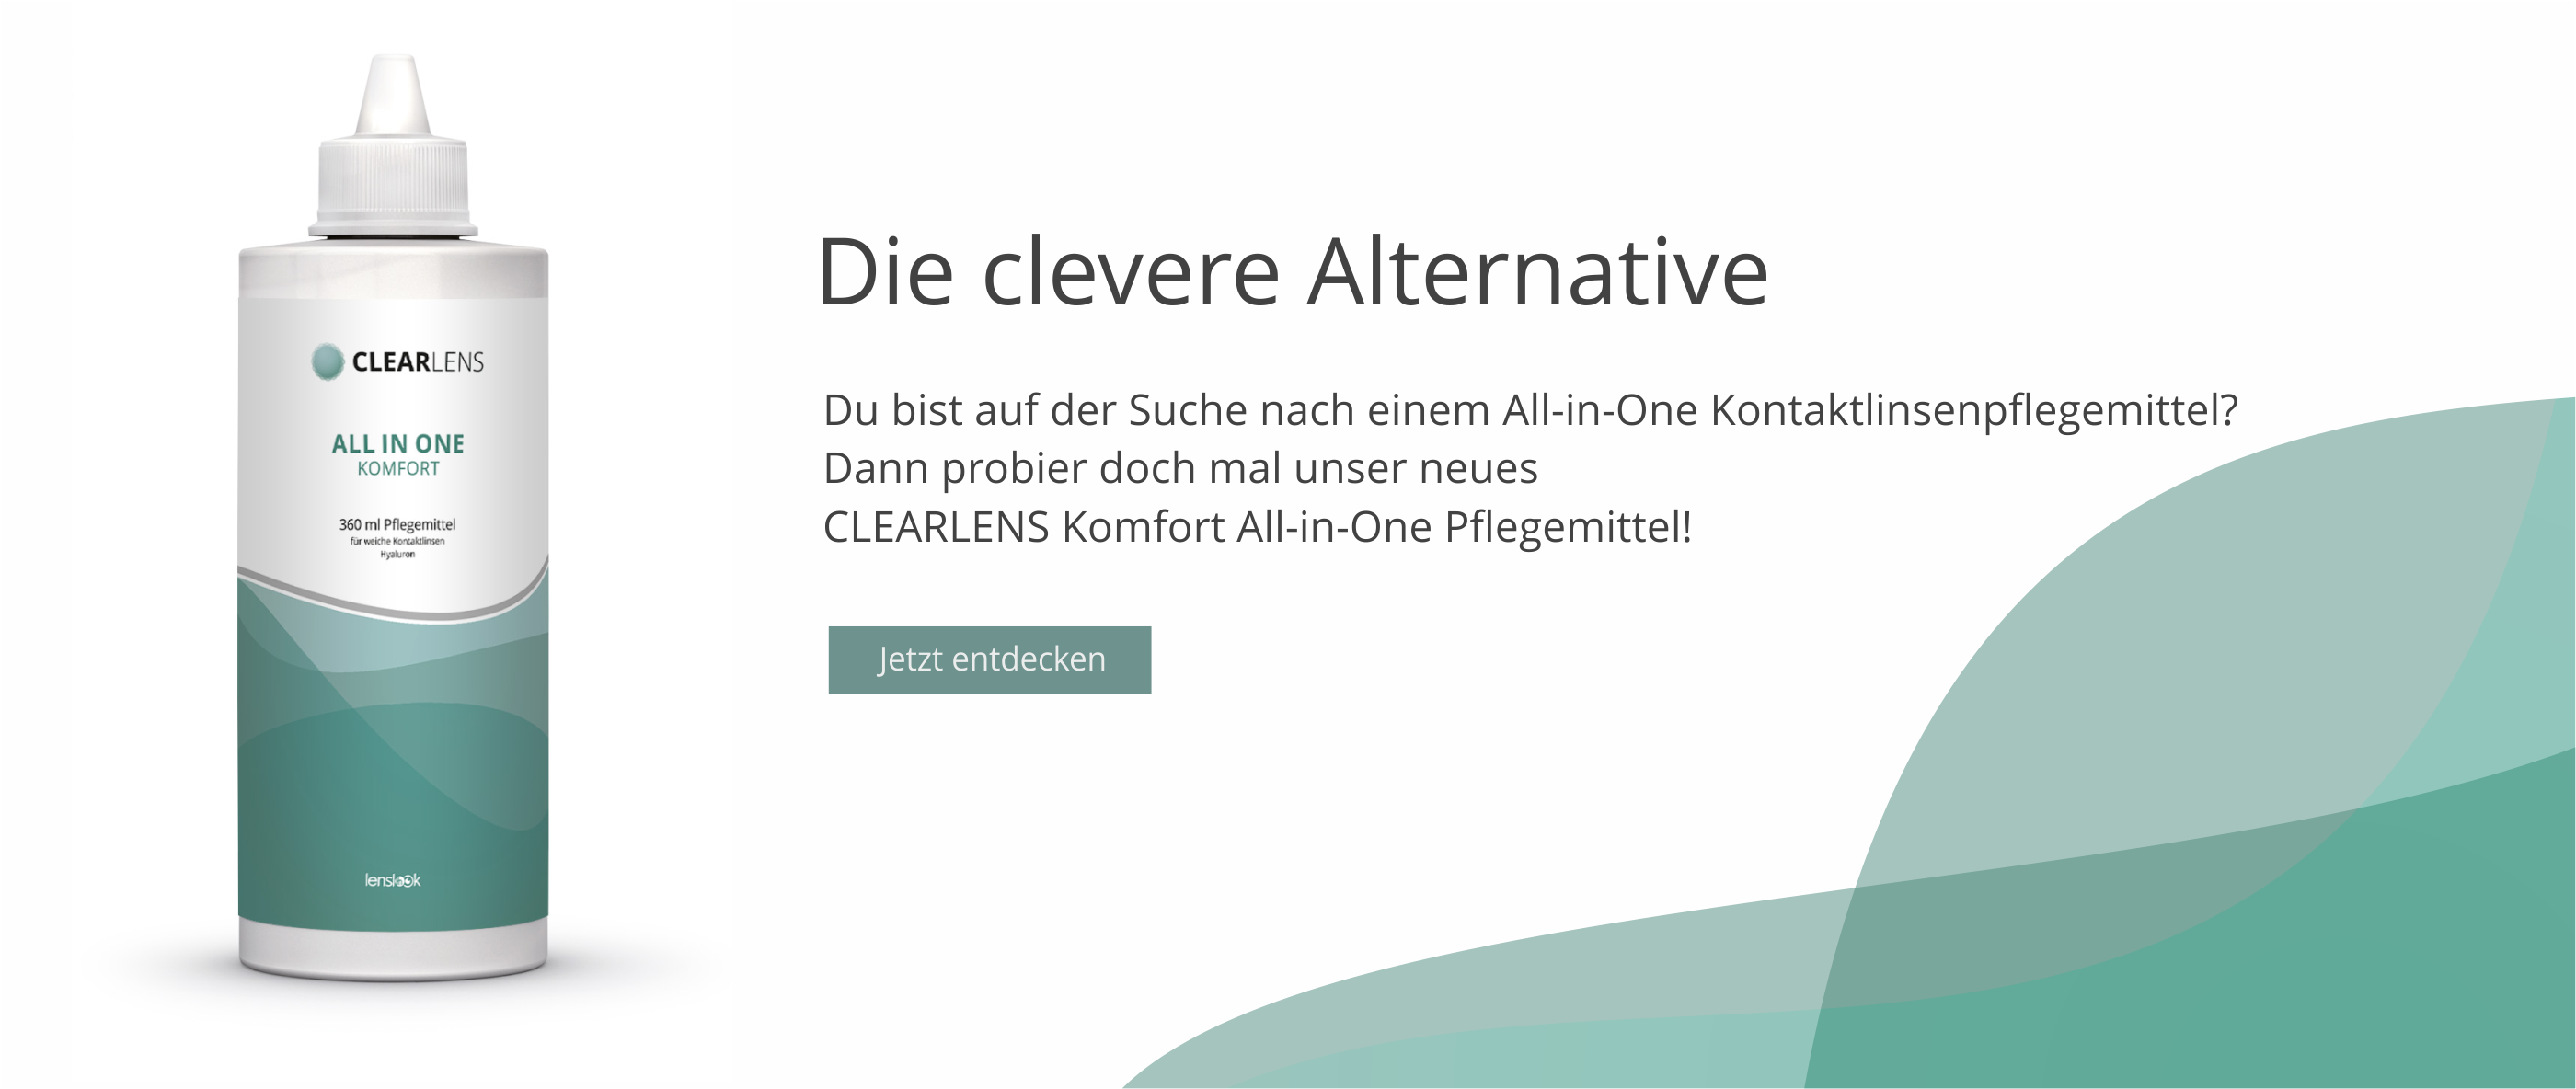 ClearLens_Alternative_Komfort_360ml